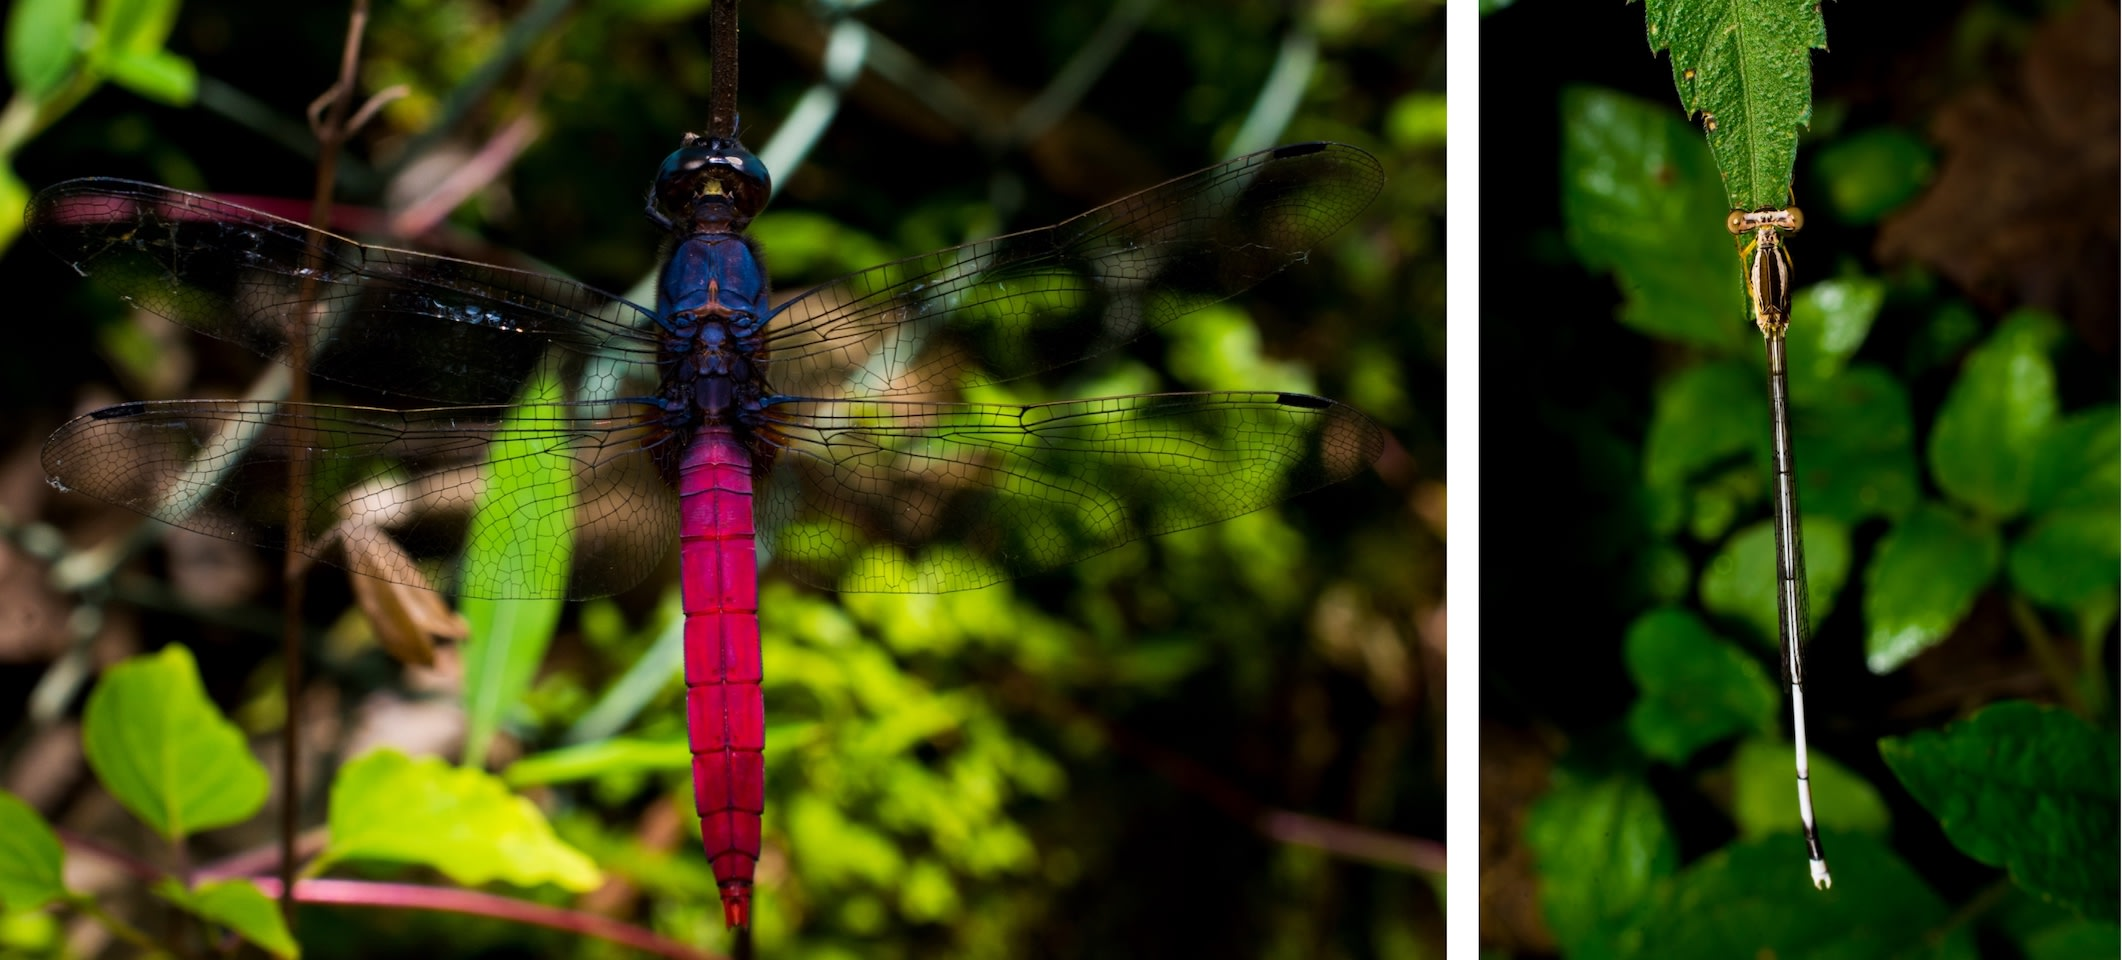 Dragonflies and damselflies have lots in common, and a few notable differences. The simplest way to identify them is to take notice of the insect's resting position: The wings of a dragonfly (left) rest perpendicular to the body, like an airplane, while damselflies (right) fold their wings together at rest. Damselflies also have thinner bodies than dragonflies. The odonate on the top is the crimson-tailed marsh hawk (Orthetrum pruinosum) from Gudalur, Tamil Nadu. Photos: Samuel John.